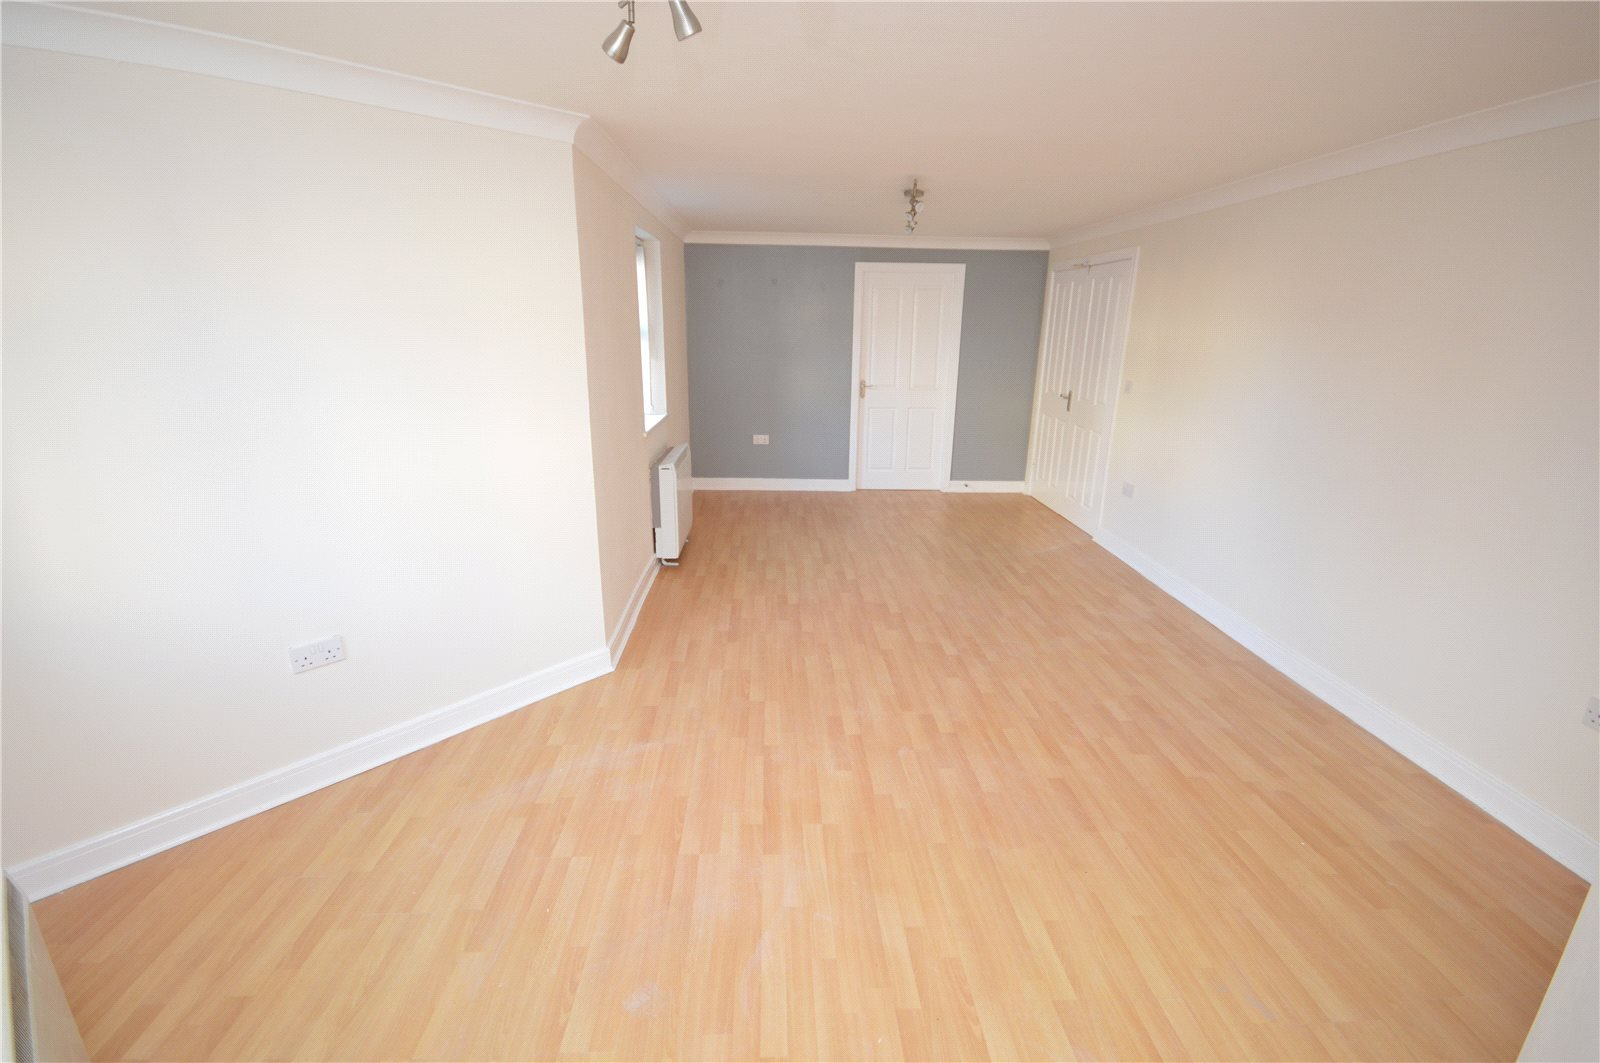 Property for sale in Bradford, interior dining and living room